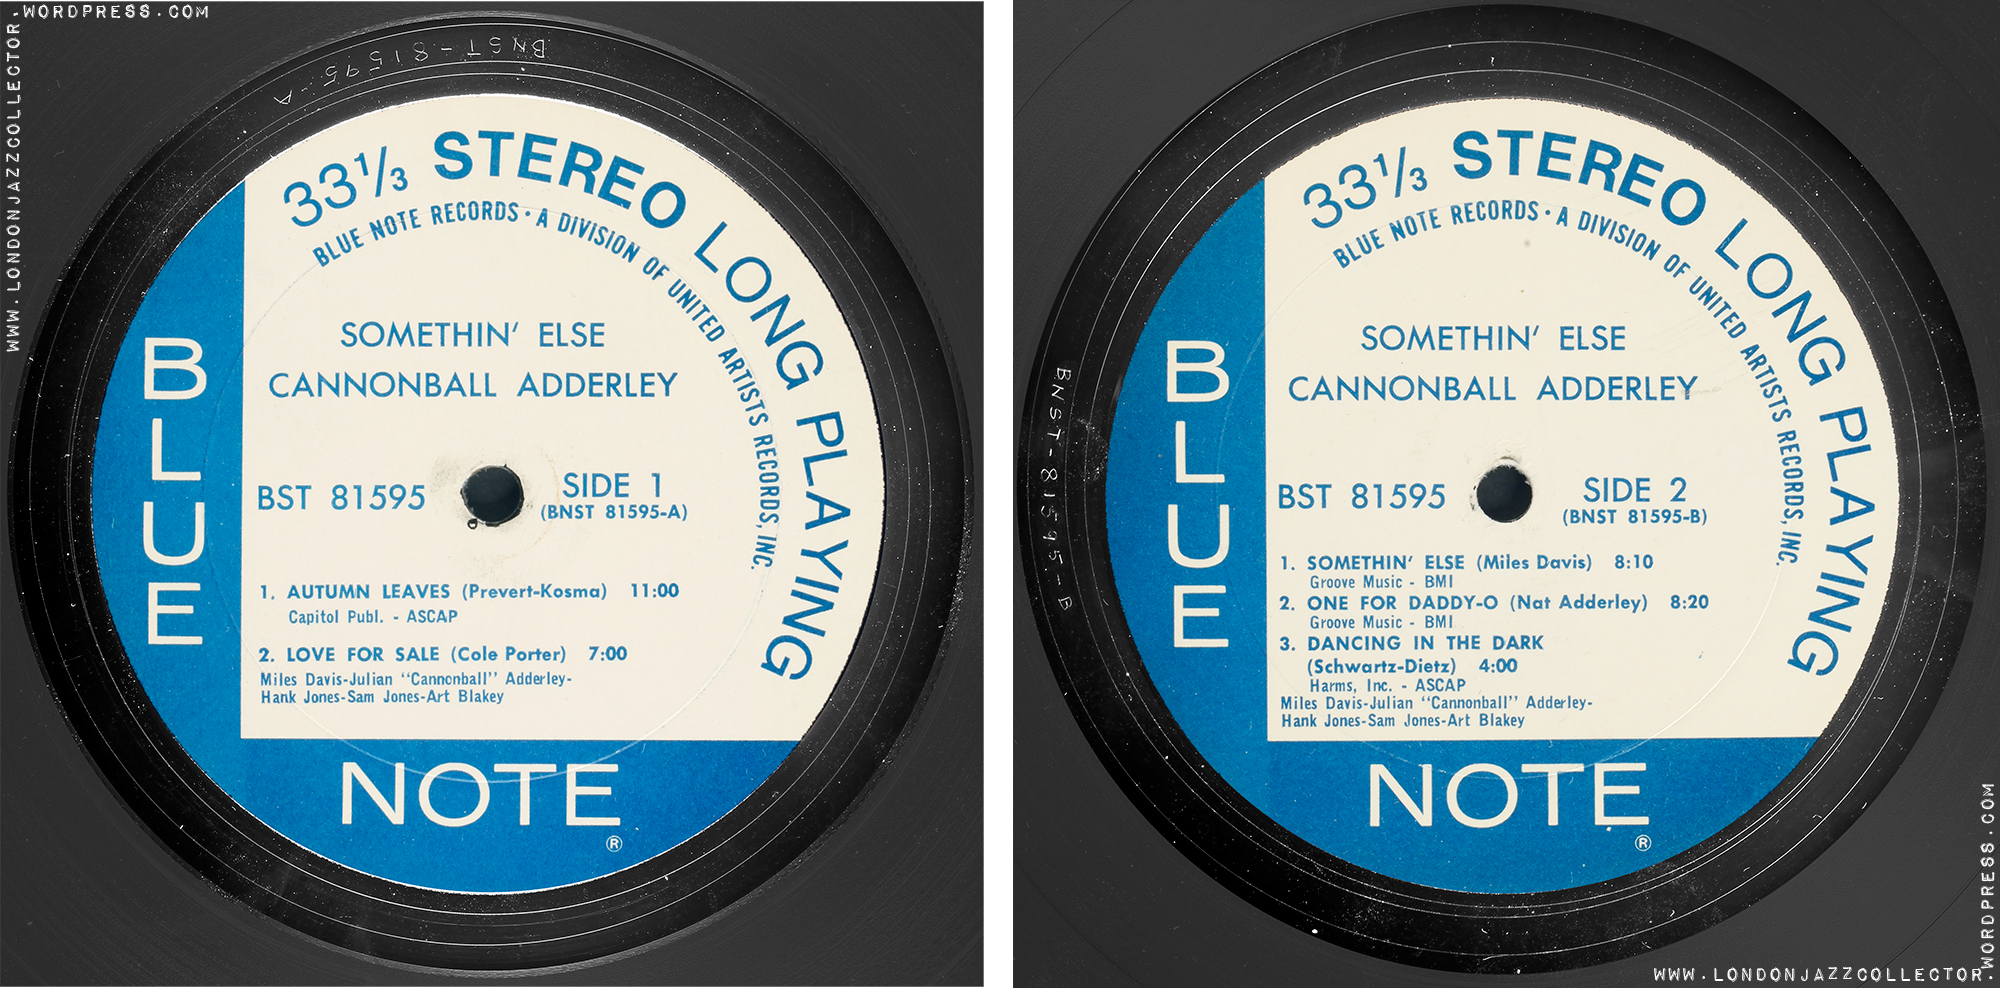 hight resolution of Cannonball Adderley: Somethin' Else – Blue Note 'Classic Vinyl Series'  (2021)   LondonJazzCollector